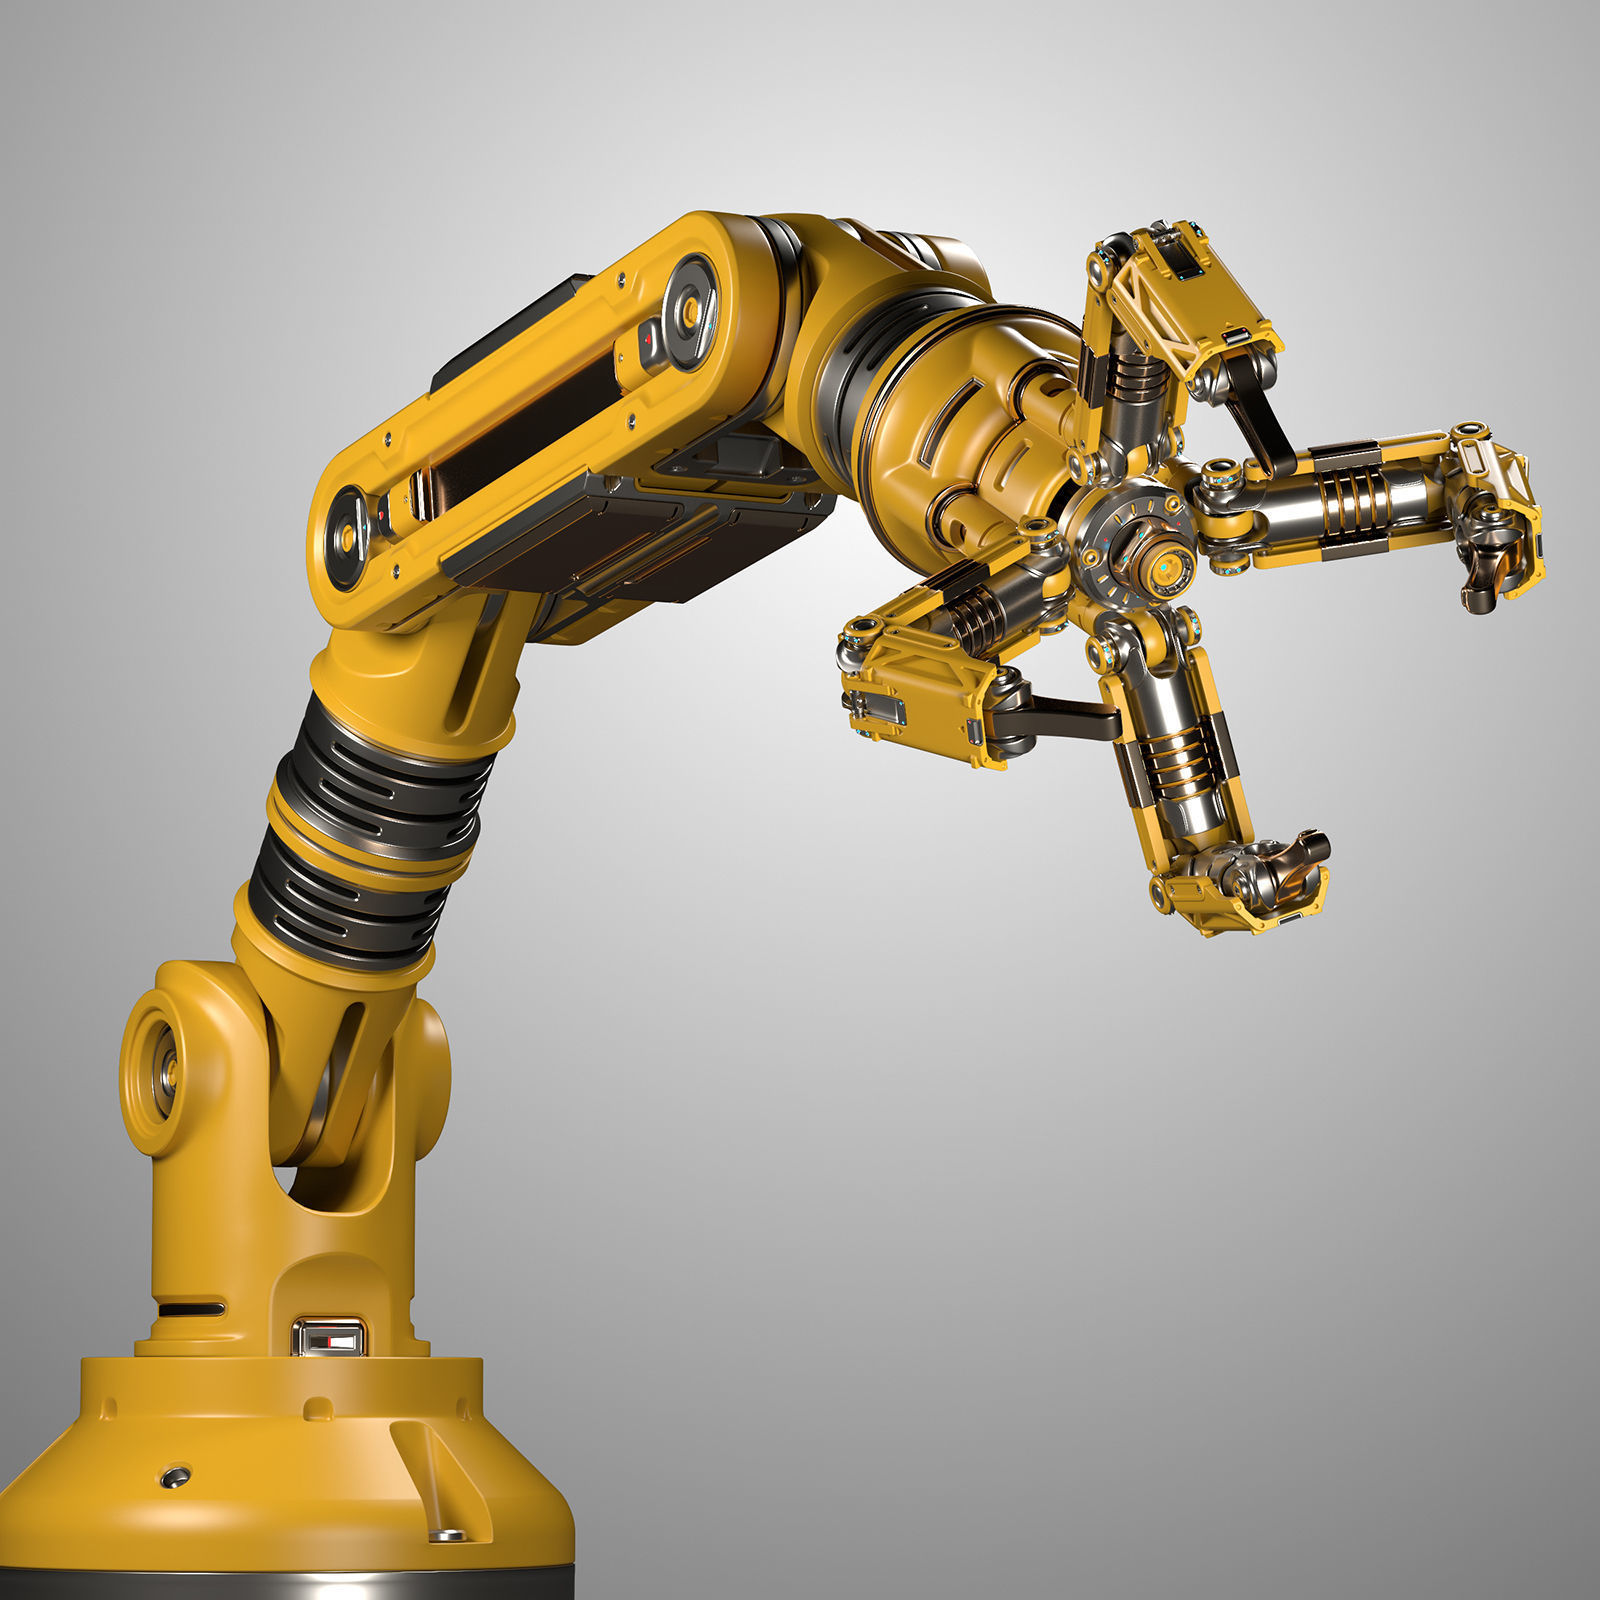 Robotic Arm Rigged and Animated